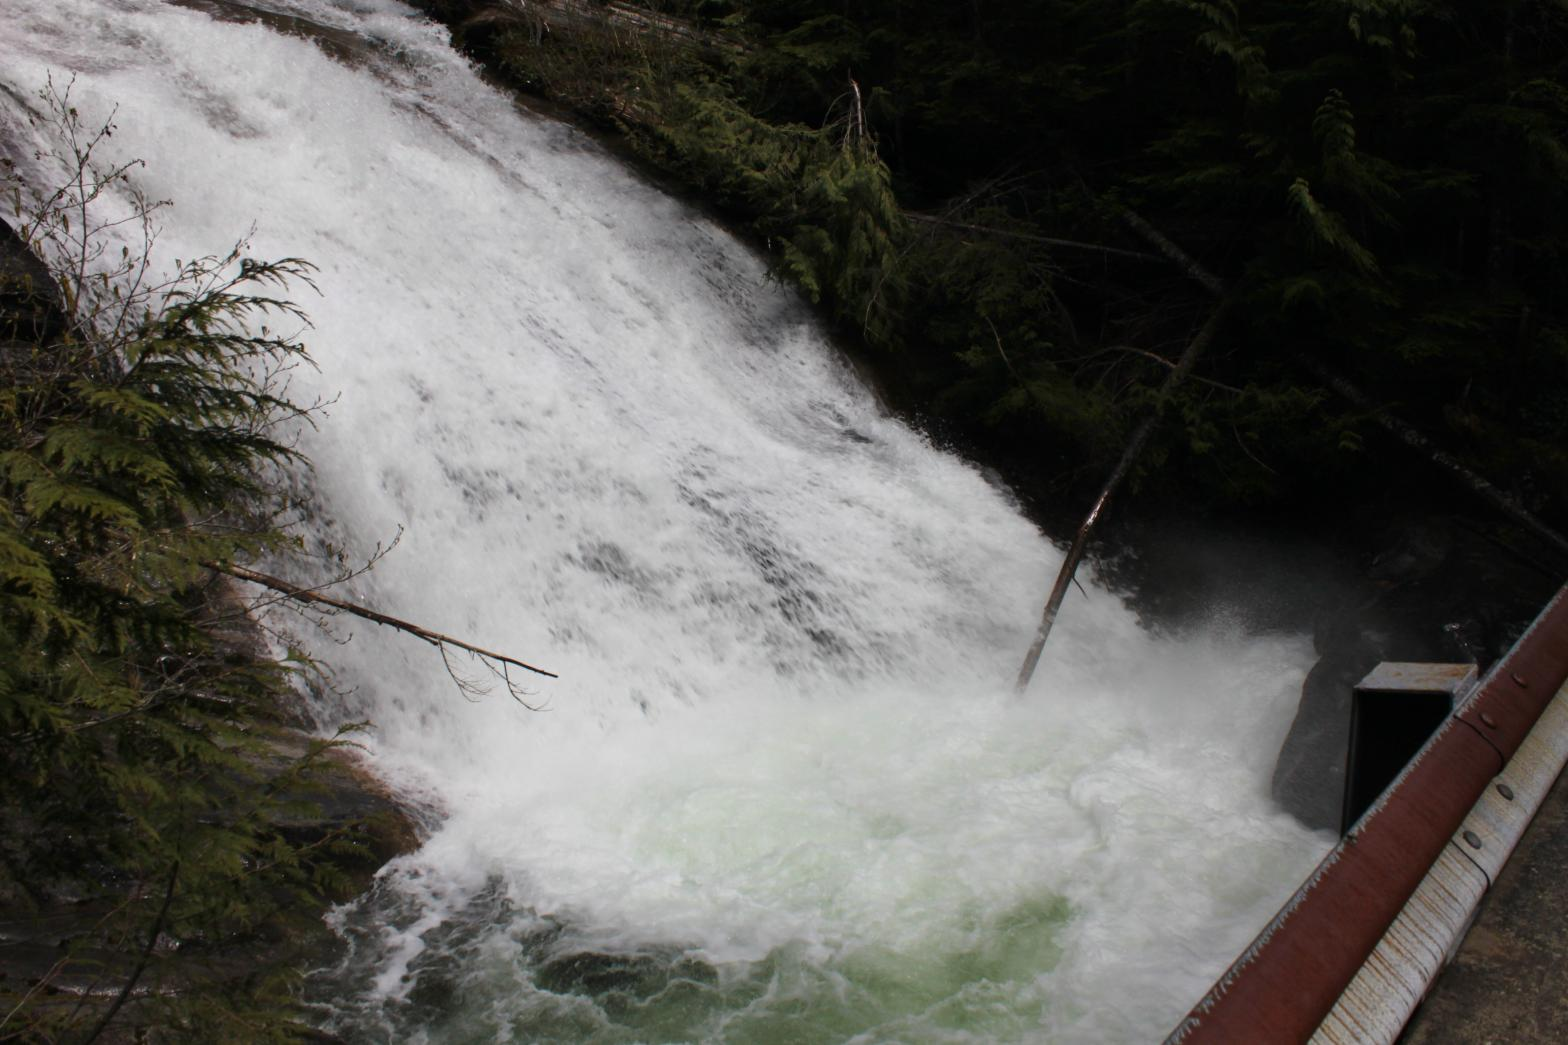 Looking down at the bottom of Big Creek Falls